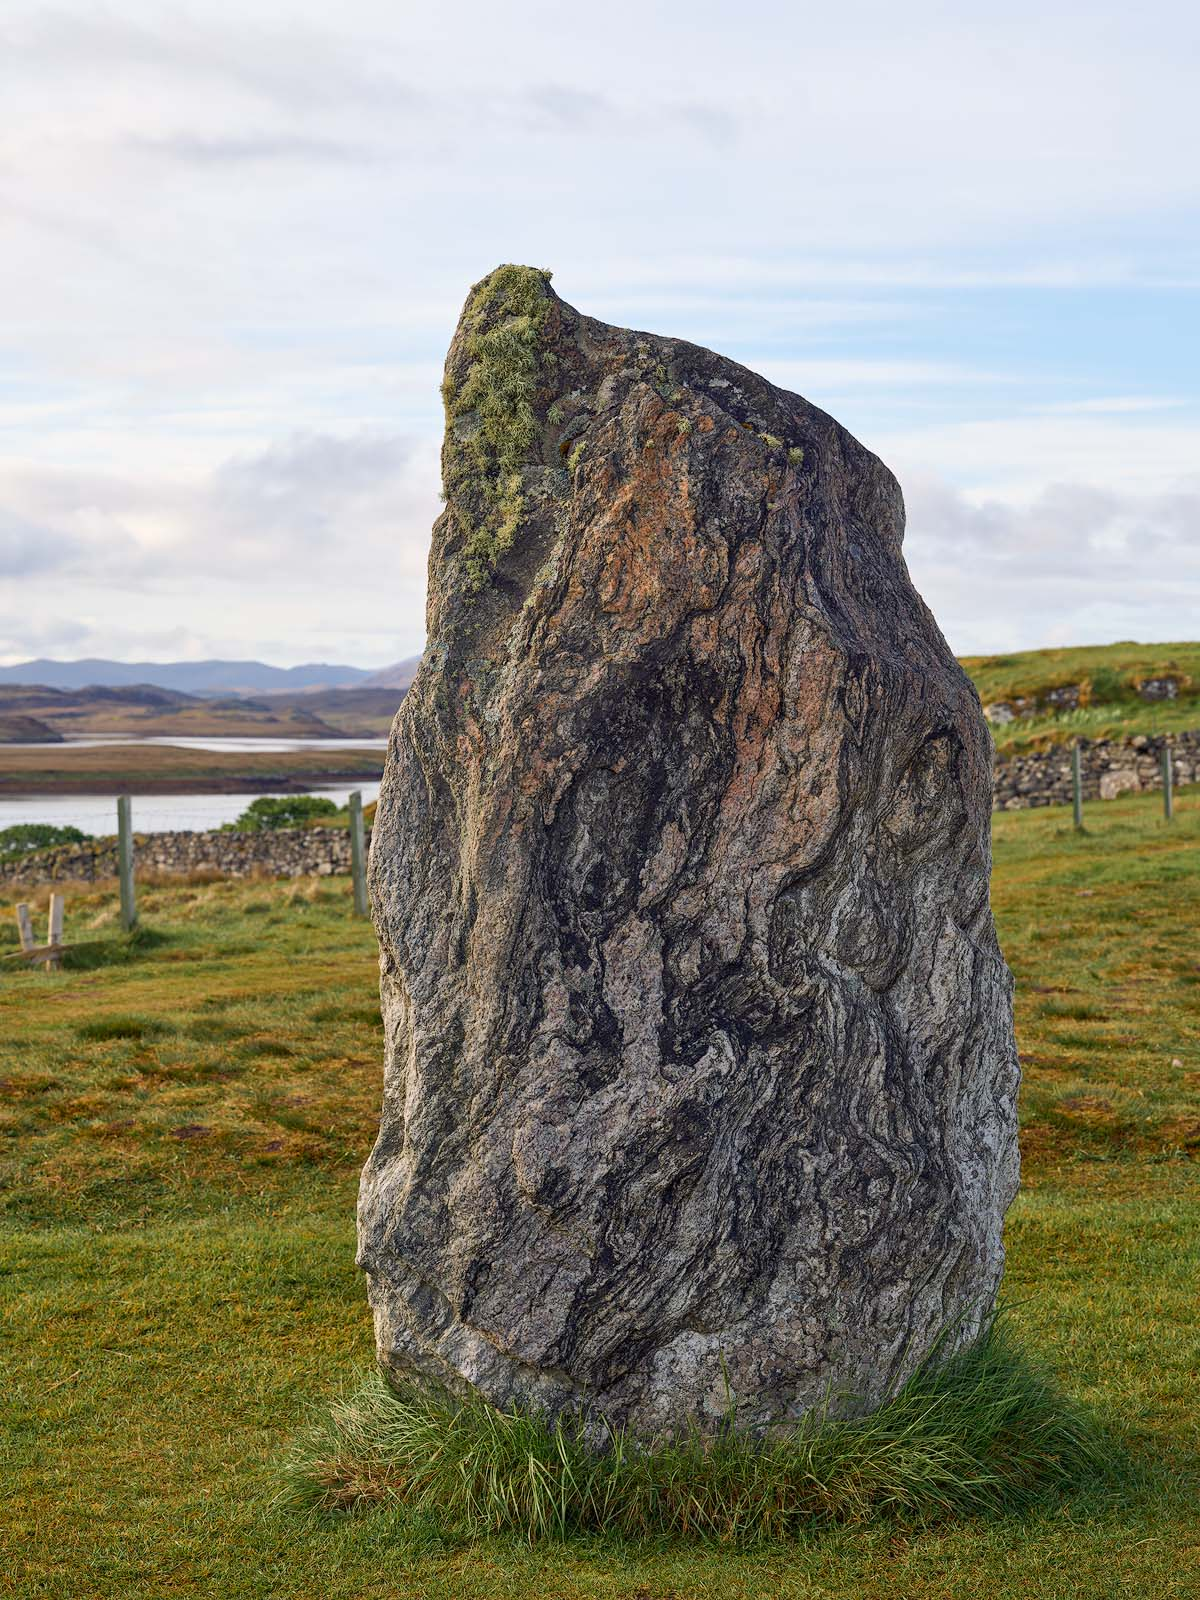 WORLD REGIONS & COUNTRIES, Europe, United Kingdom, Scotland, Isle of Lewis, Callanish Stones, concepts, ritual, art, fine art, sculpture, stone sculpture, environment, scenery, land, stones, stone, photo